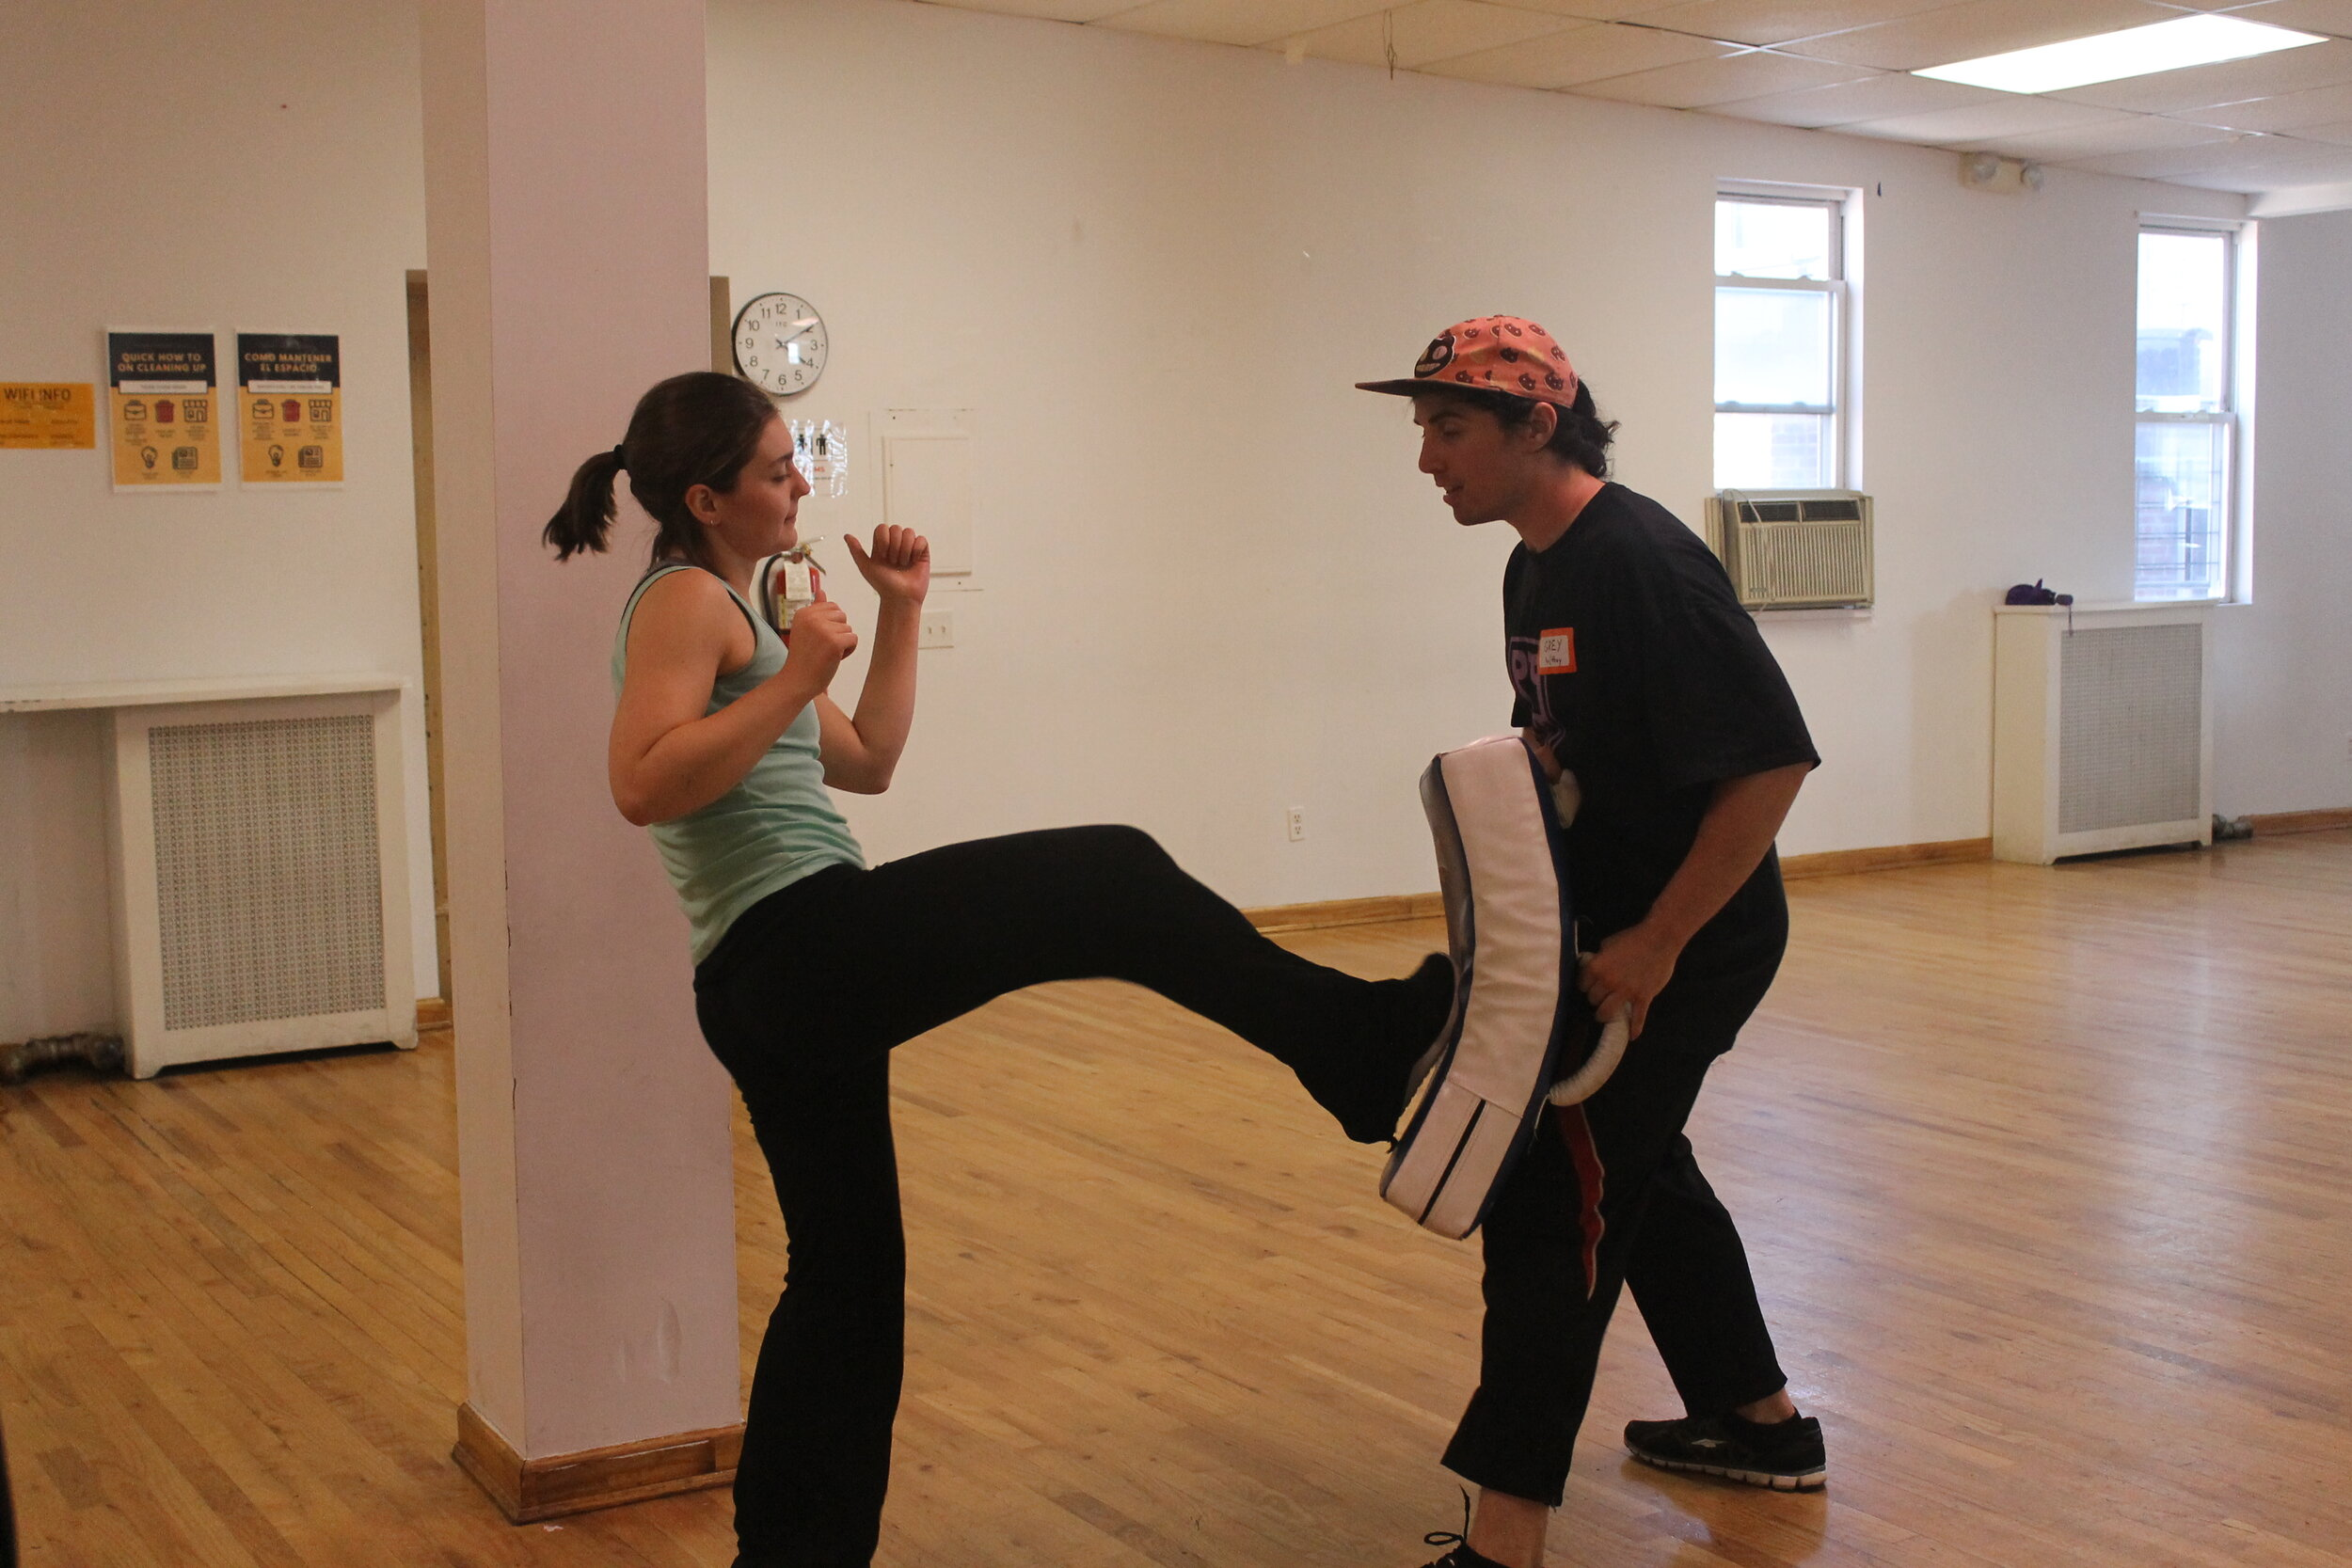 Image from Body Politic event,    FIGHT BACK! SELF-DEFENSE AND PHYSICAL EMPOWERMENT IN THE AGE OF TRUMP    April '18. Photo courtesy of Lily Stevenson